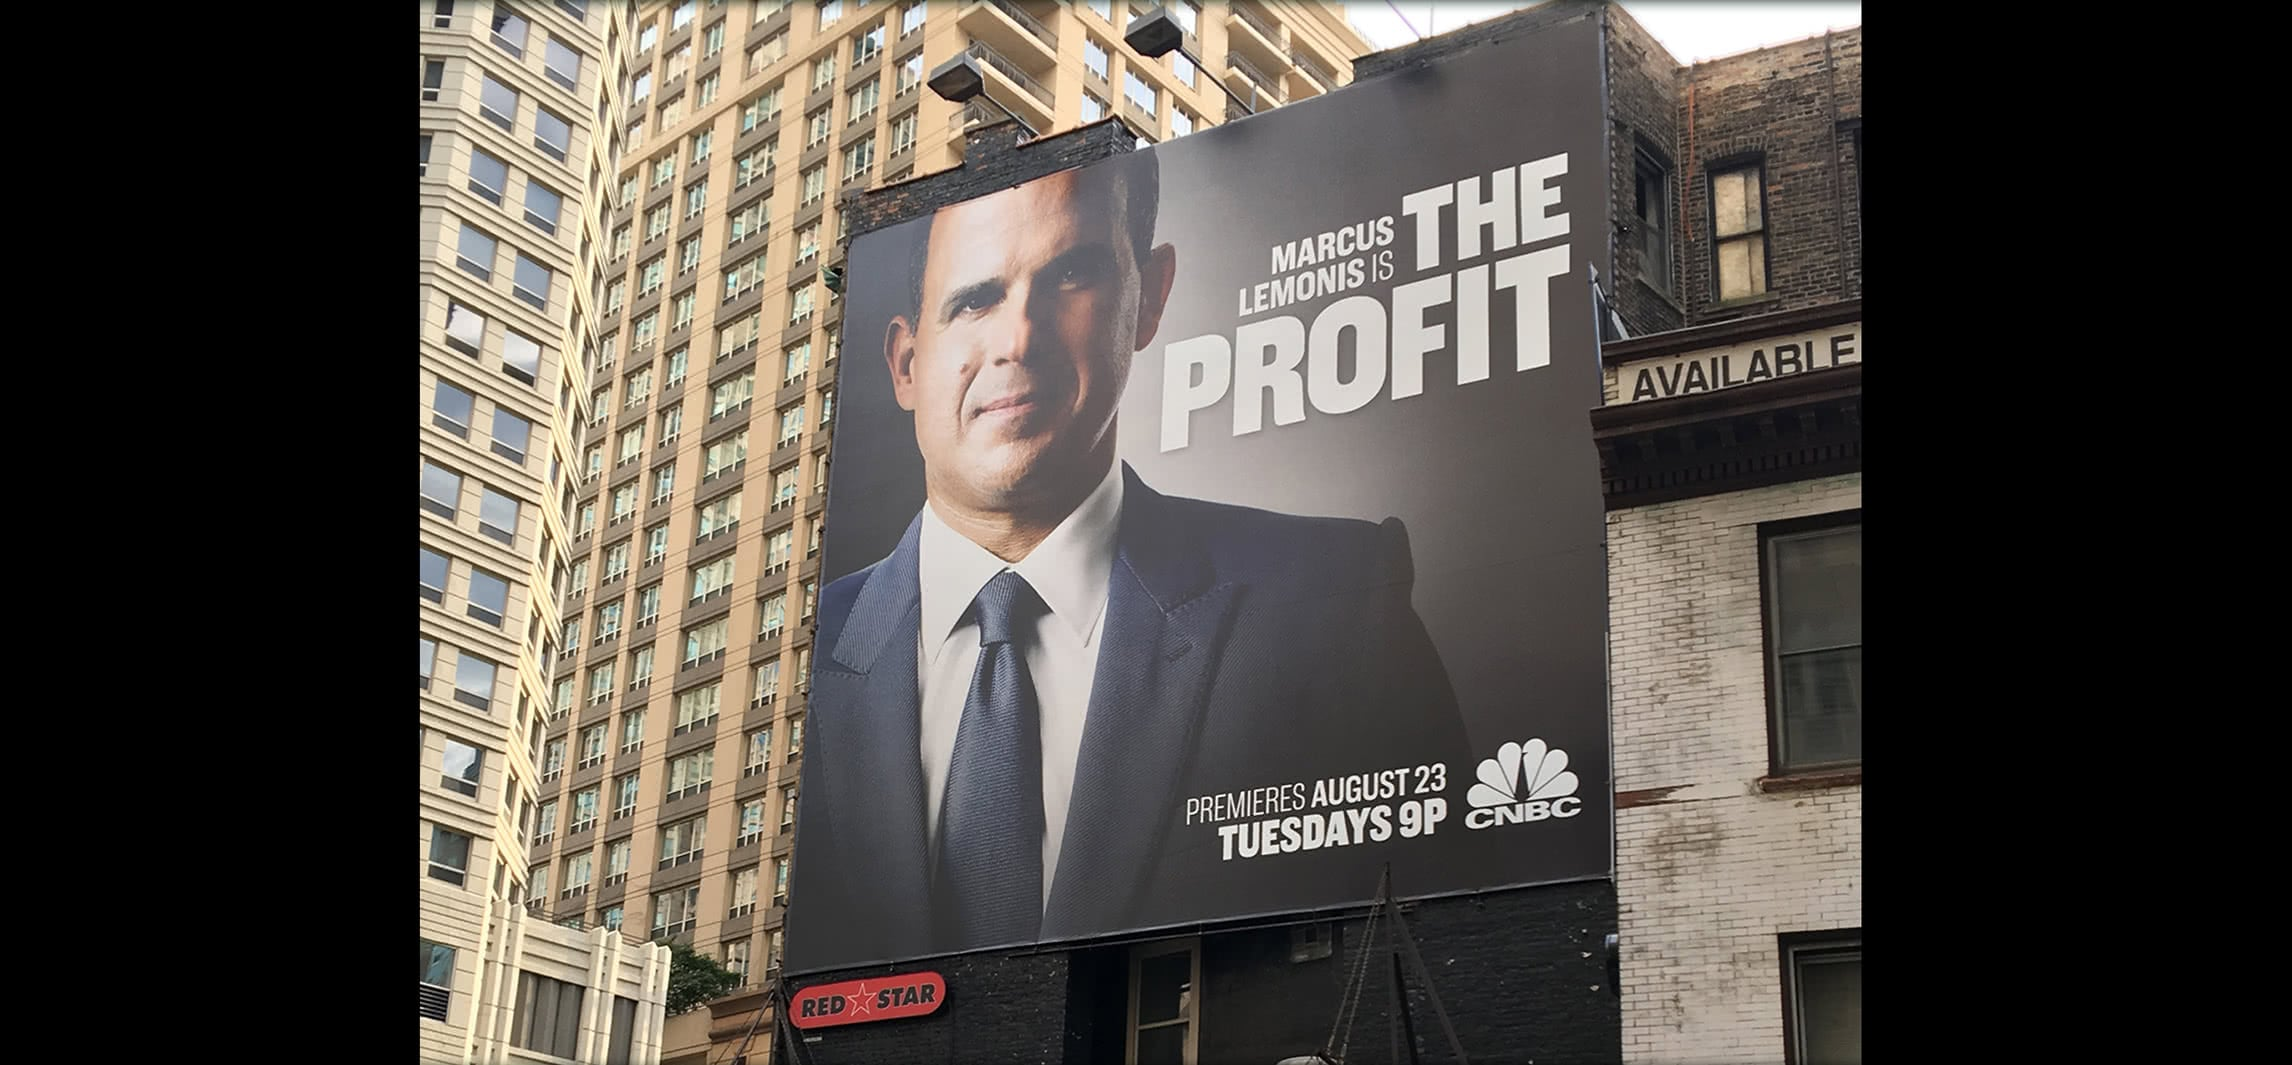 CNBC - The Profit - Billboard